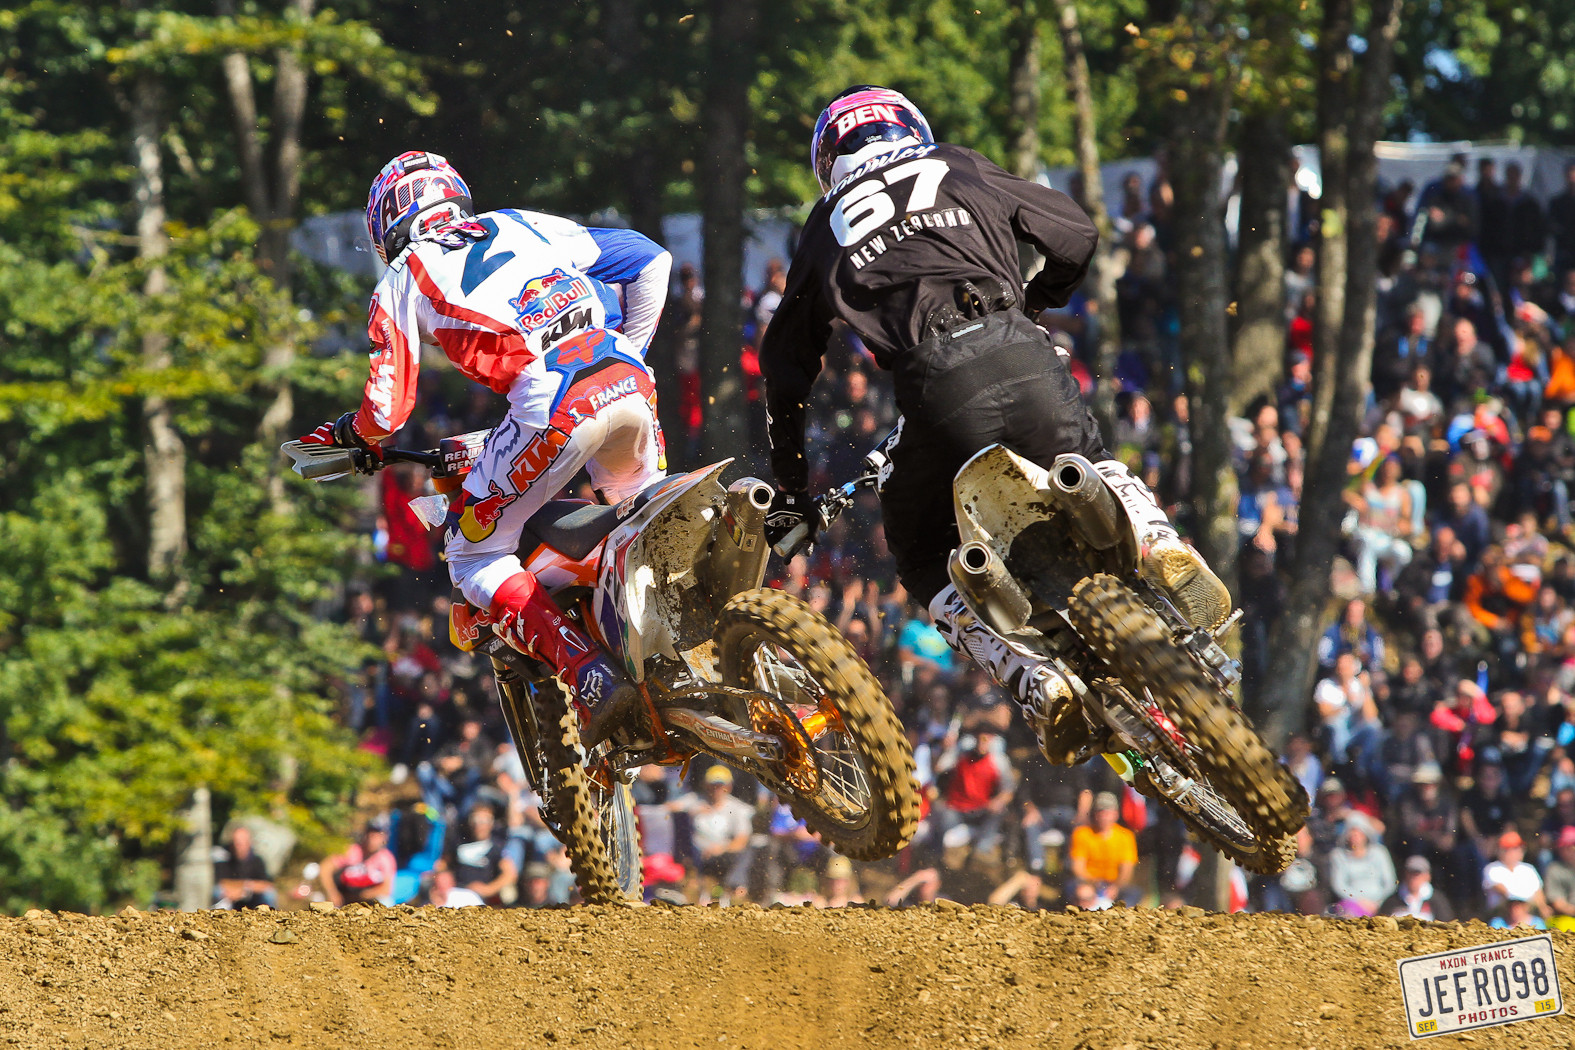 Musquin & Townley - Photo Blast: MXoN Sunday racing - Motocross Pictures - Vital MX